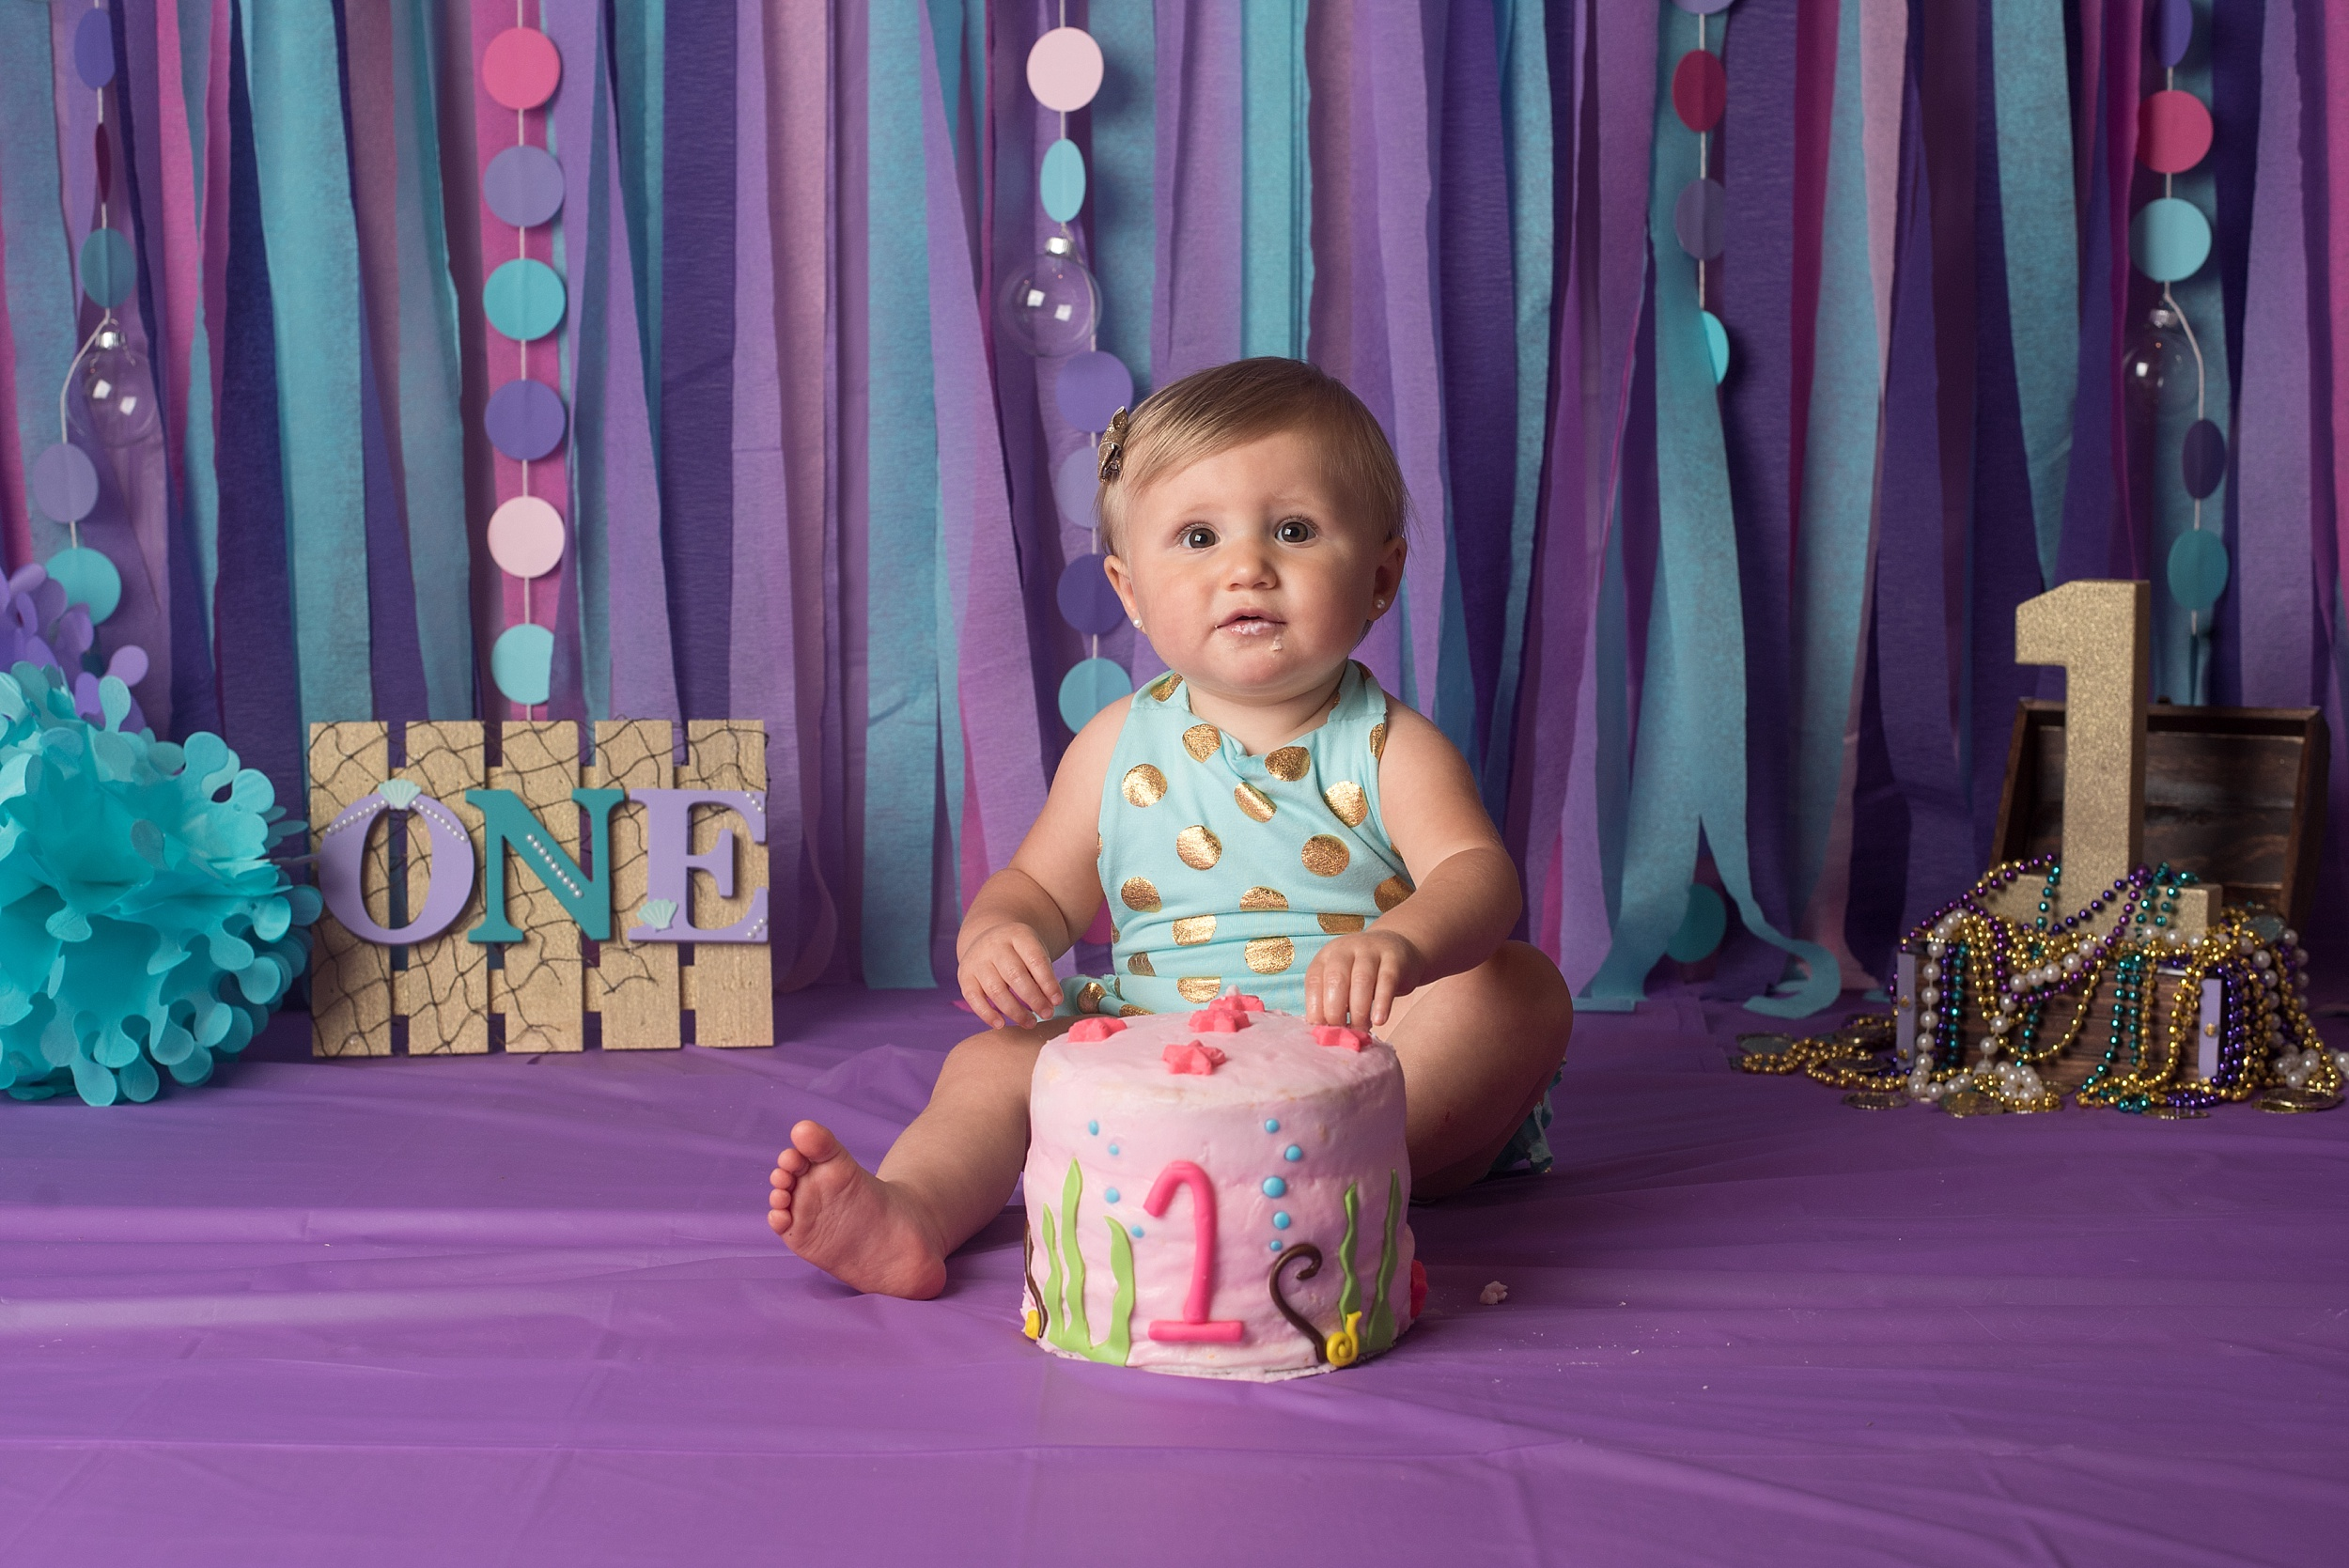 One year old girl eats her mermaid themed smash cake